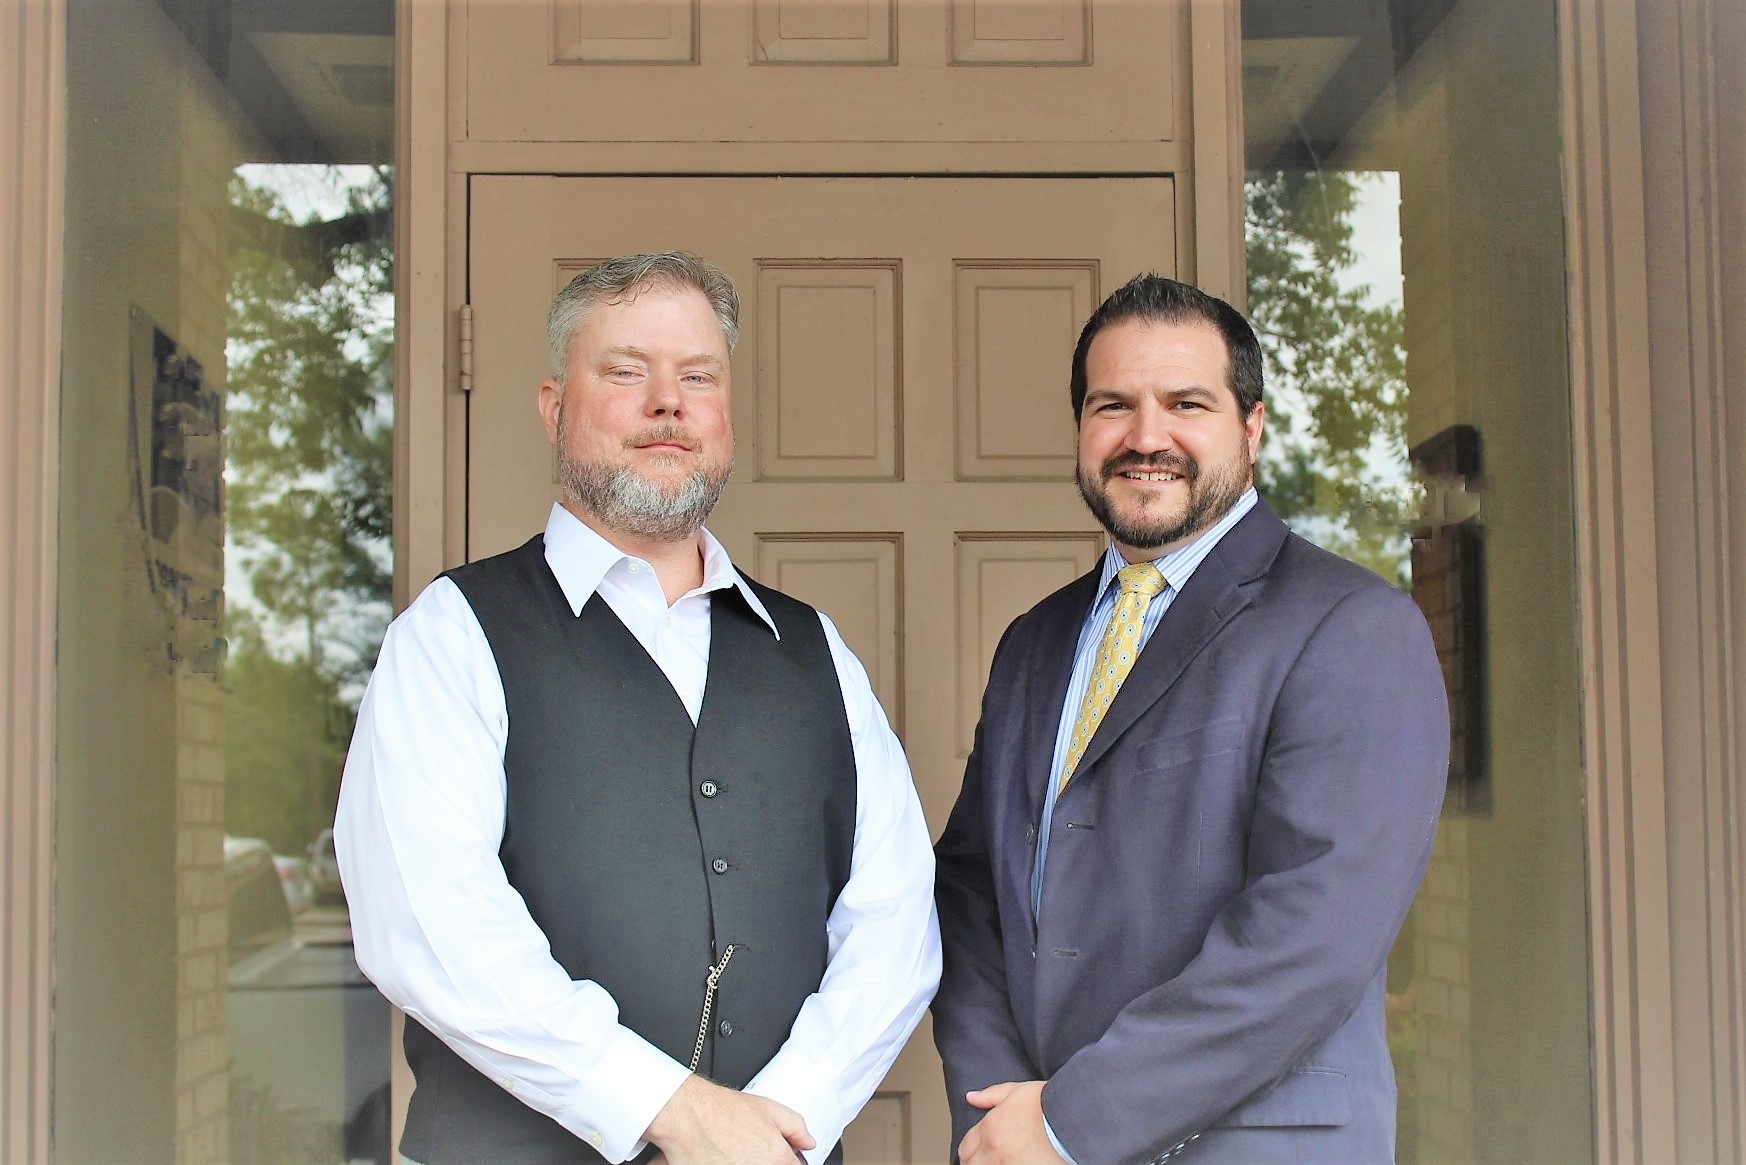 Law Firm Waxahachie & Ennis, Attorney Waxahachie & Ennis, and for Legal Services Ellis County & surrounding areas, McDonnell Coates, LLP McDonnell Coates, LLP Attorney and Counselor at Law